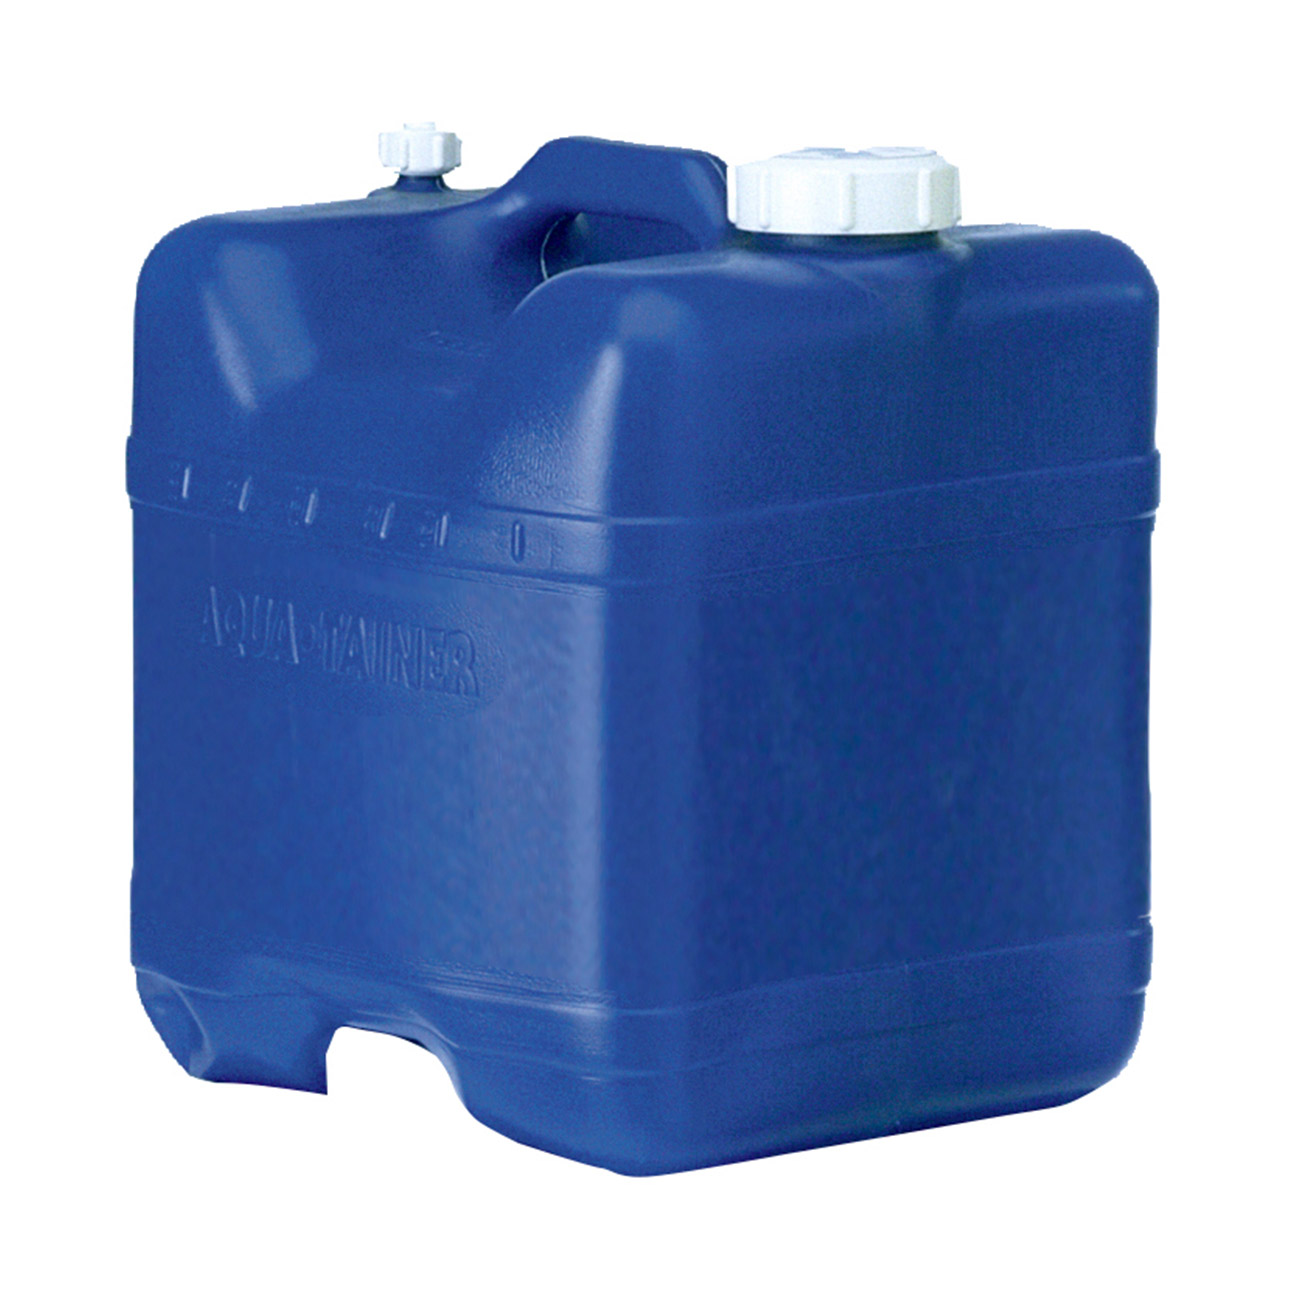 Reliance Kanister Aqua Tainer 26 Liter 0